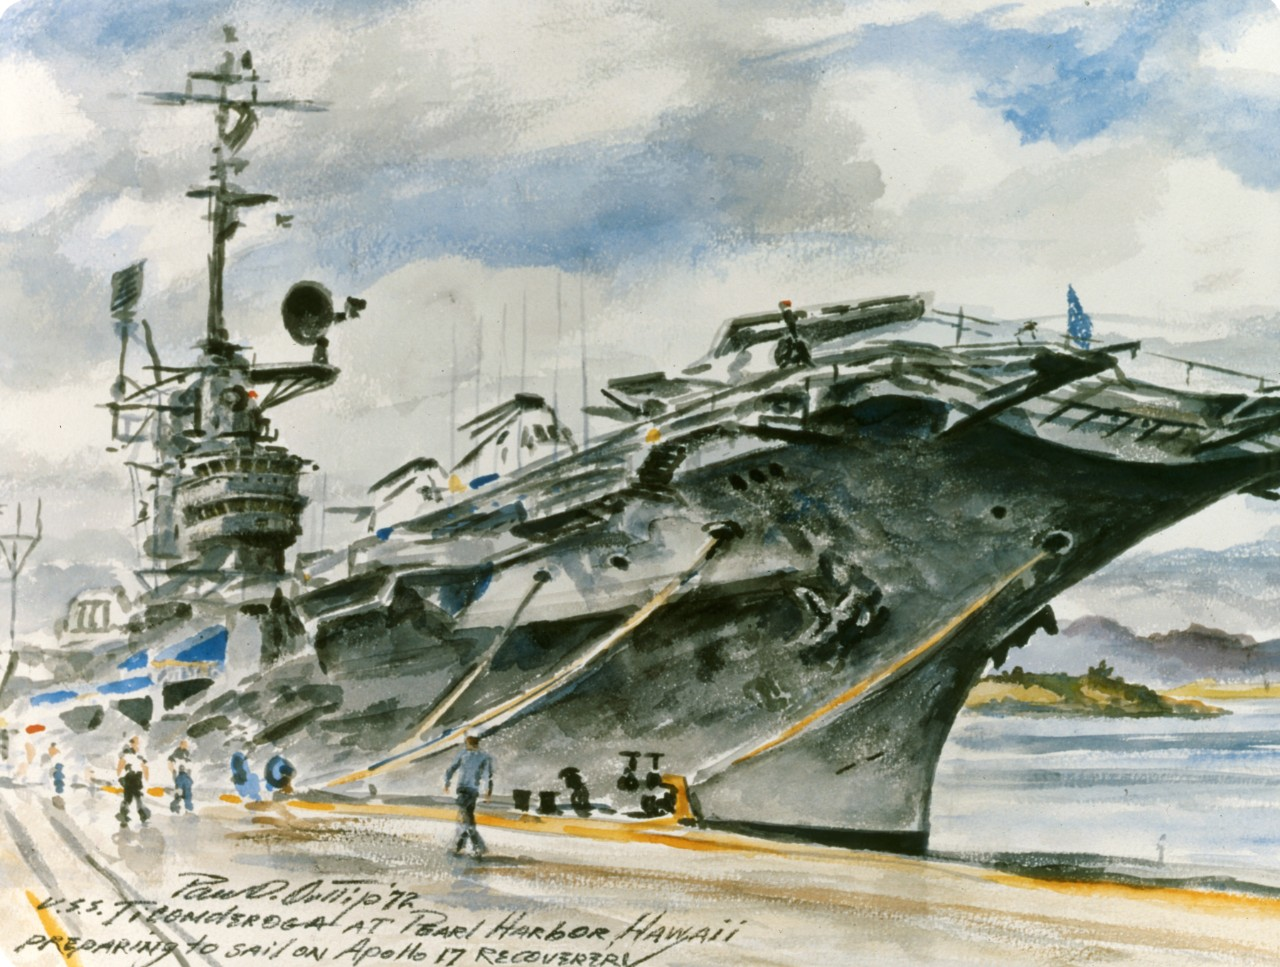 An aircraft carrier tied to a pier